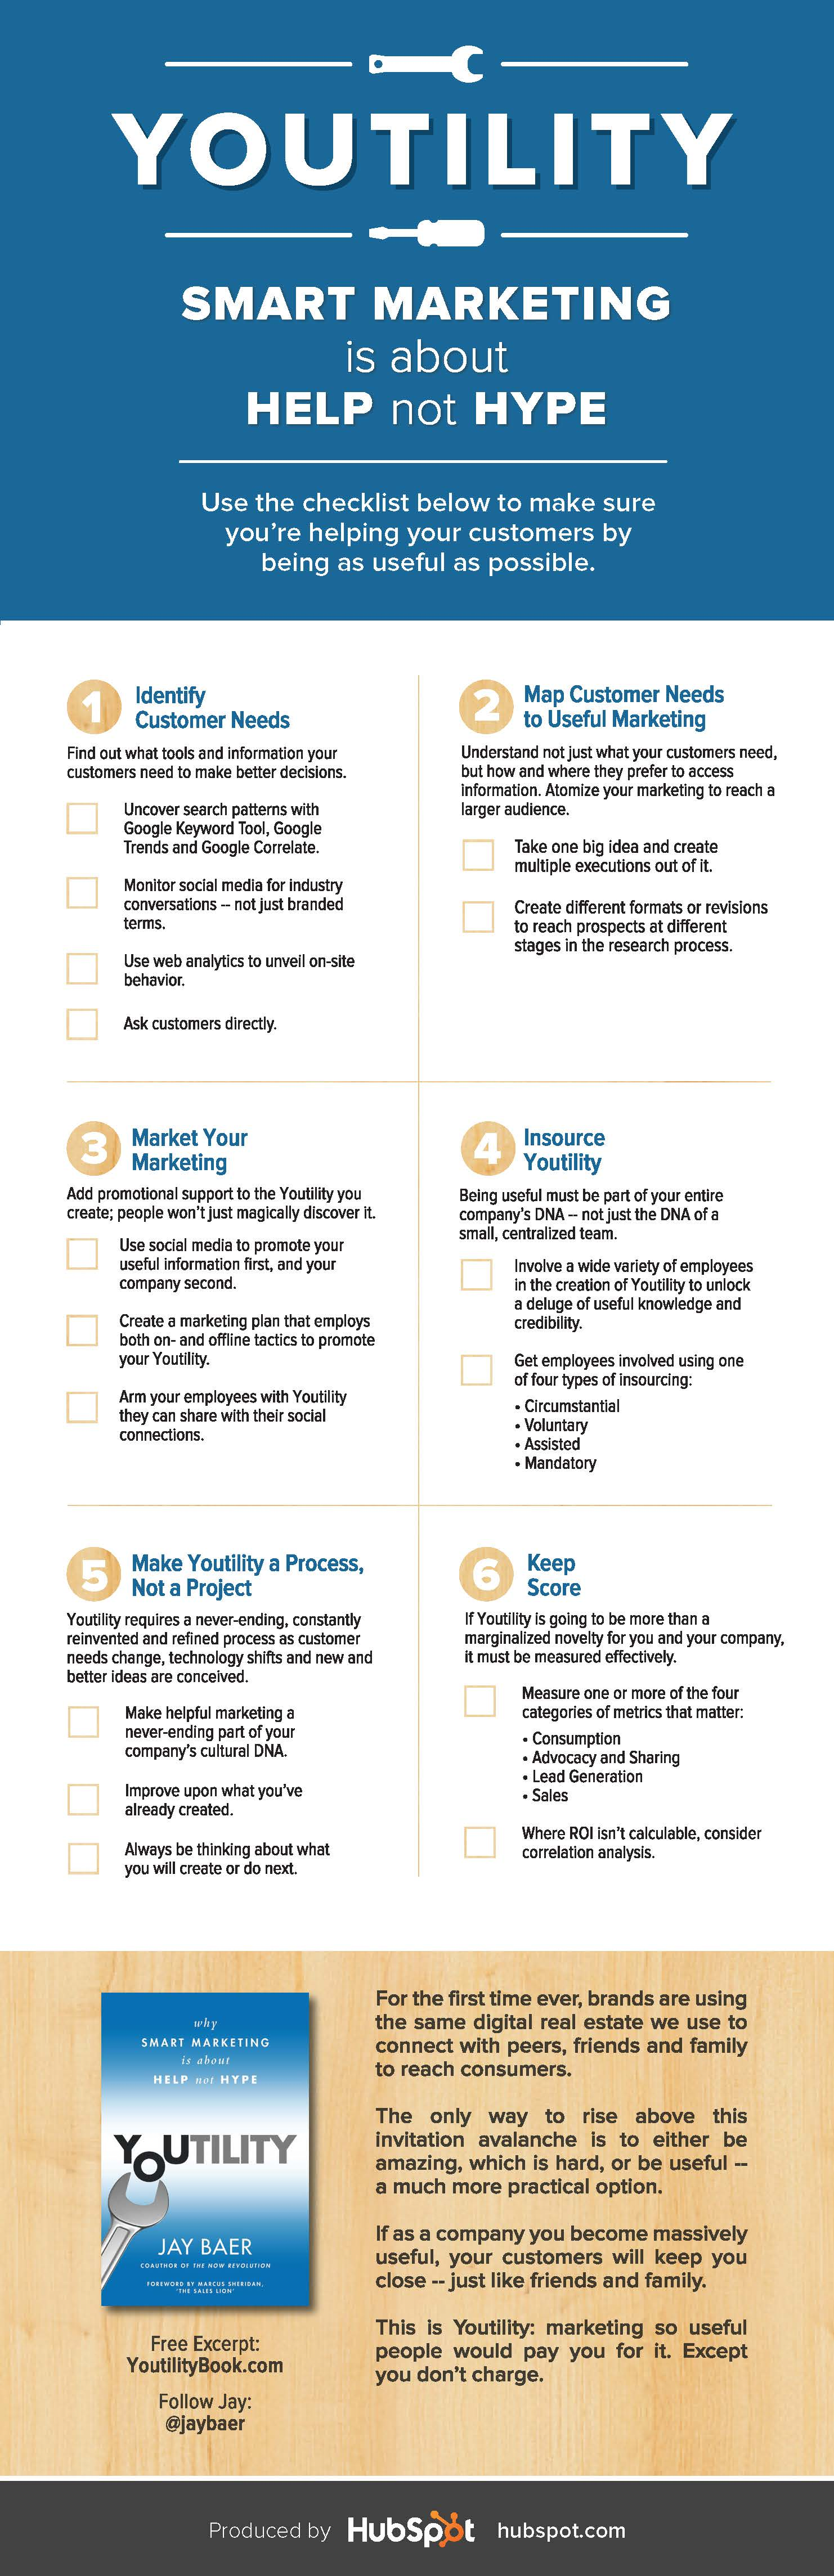 6_Steps_to_Creating_Youtility_Checklist_by_Jay_Baer_and_HubSpot